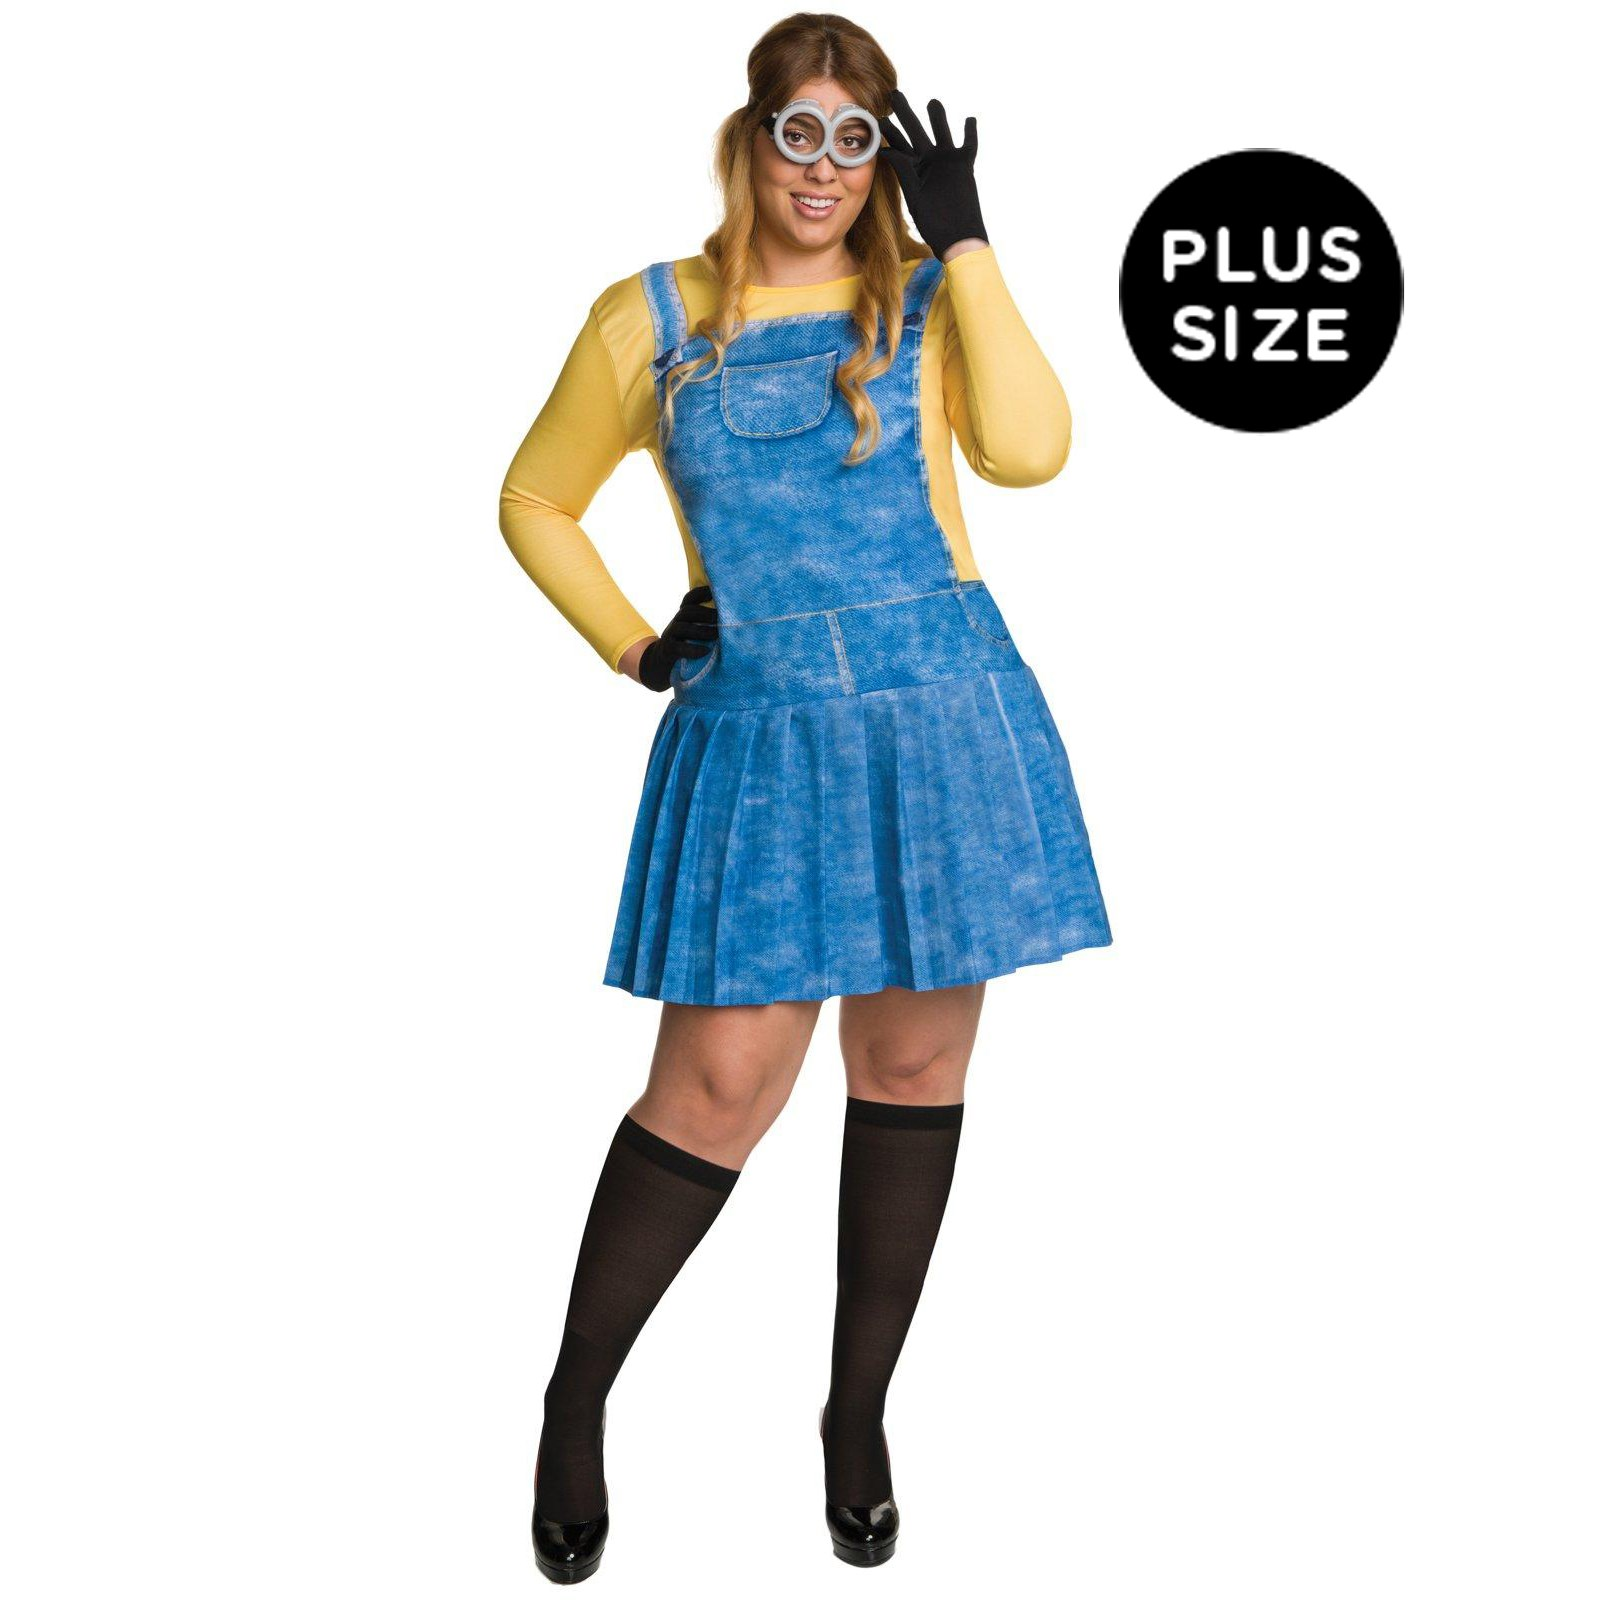 lovely minion outfit for women 15